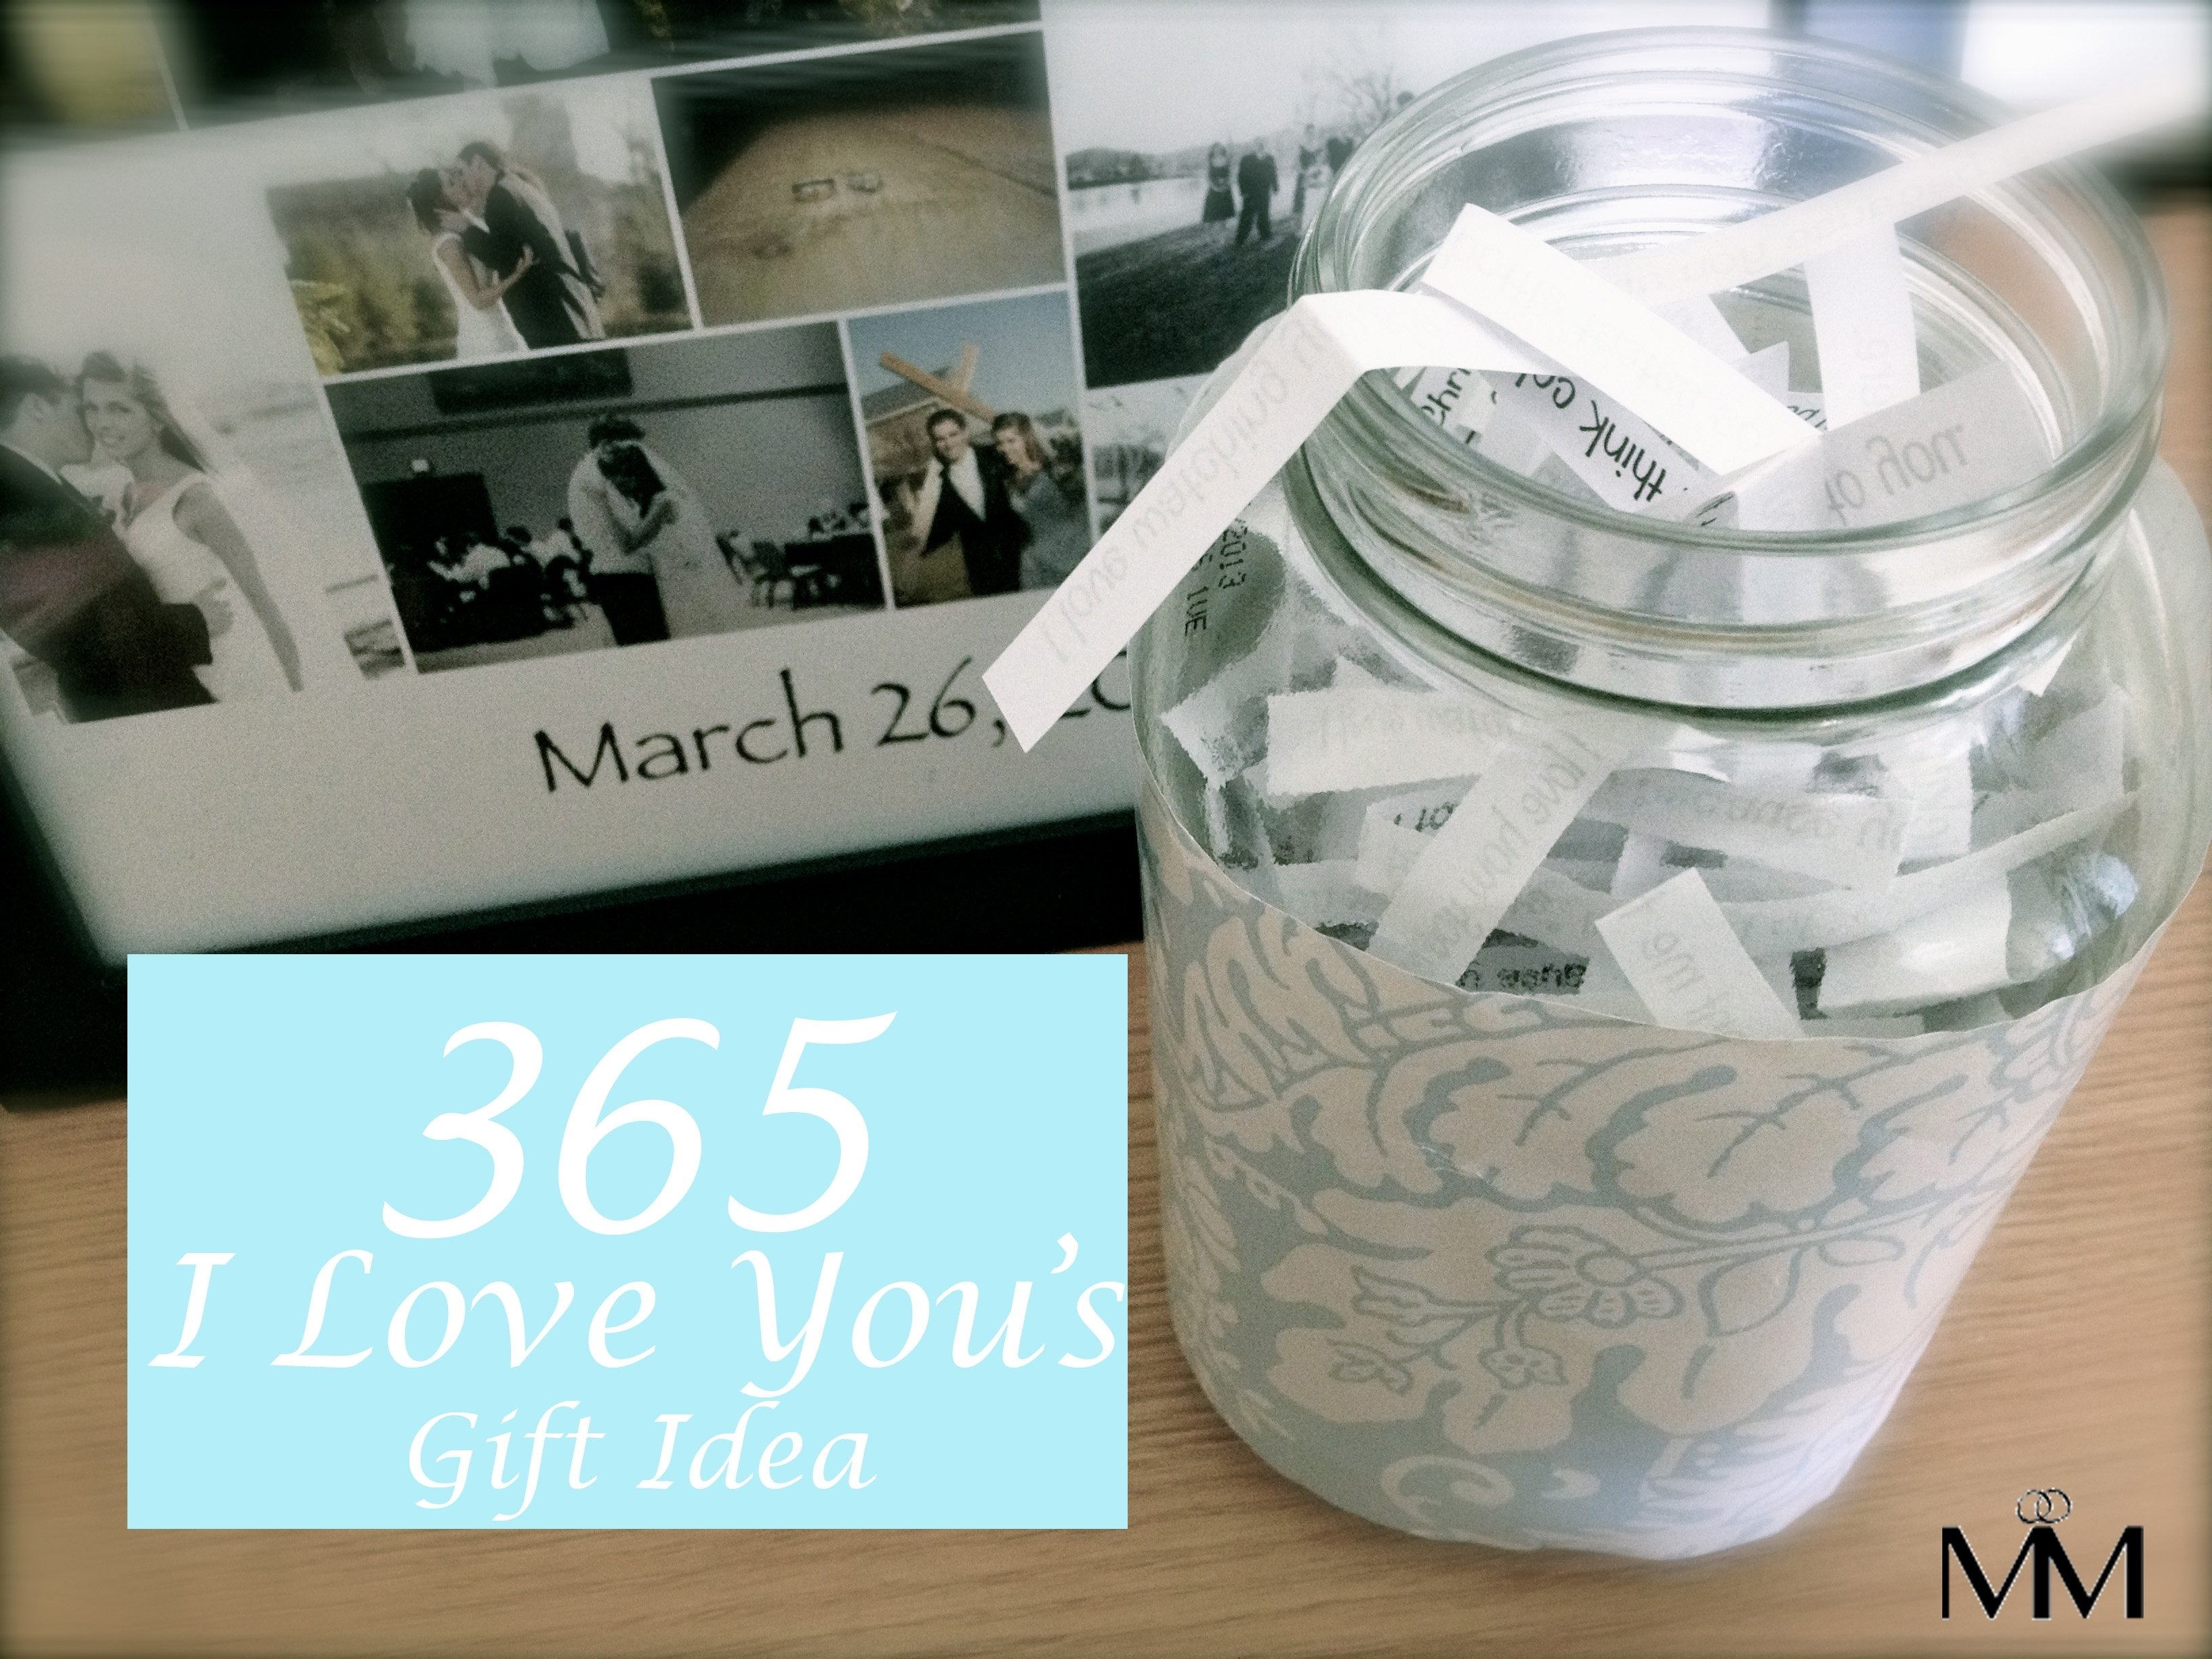 10 Great Anniversary Gifts Ideas For Her diy 2 year anniversary gift idea the 365 reasons why i love you 6 2021